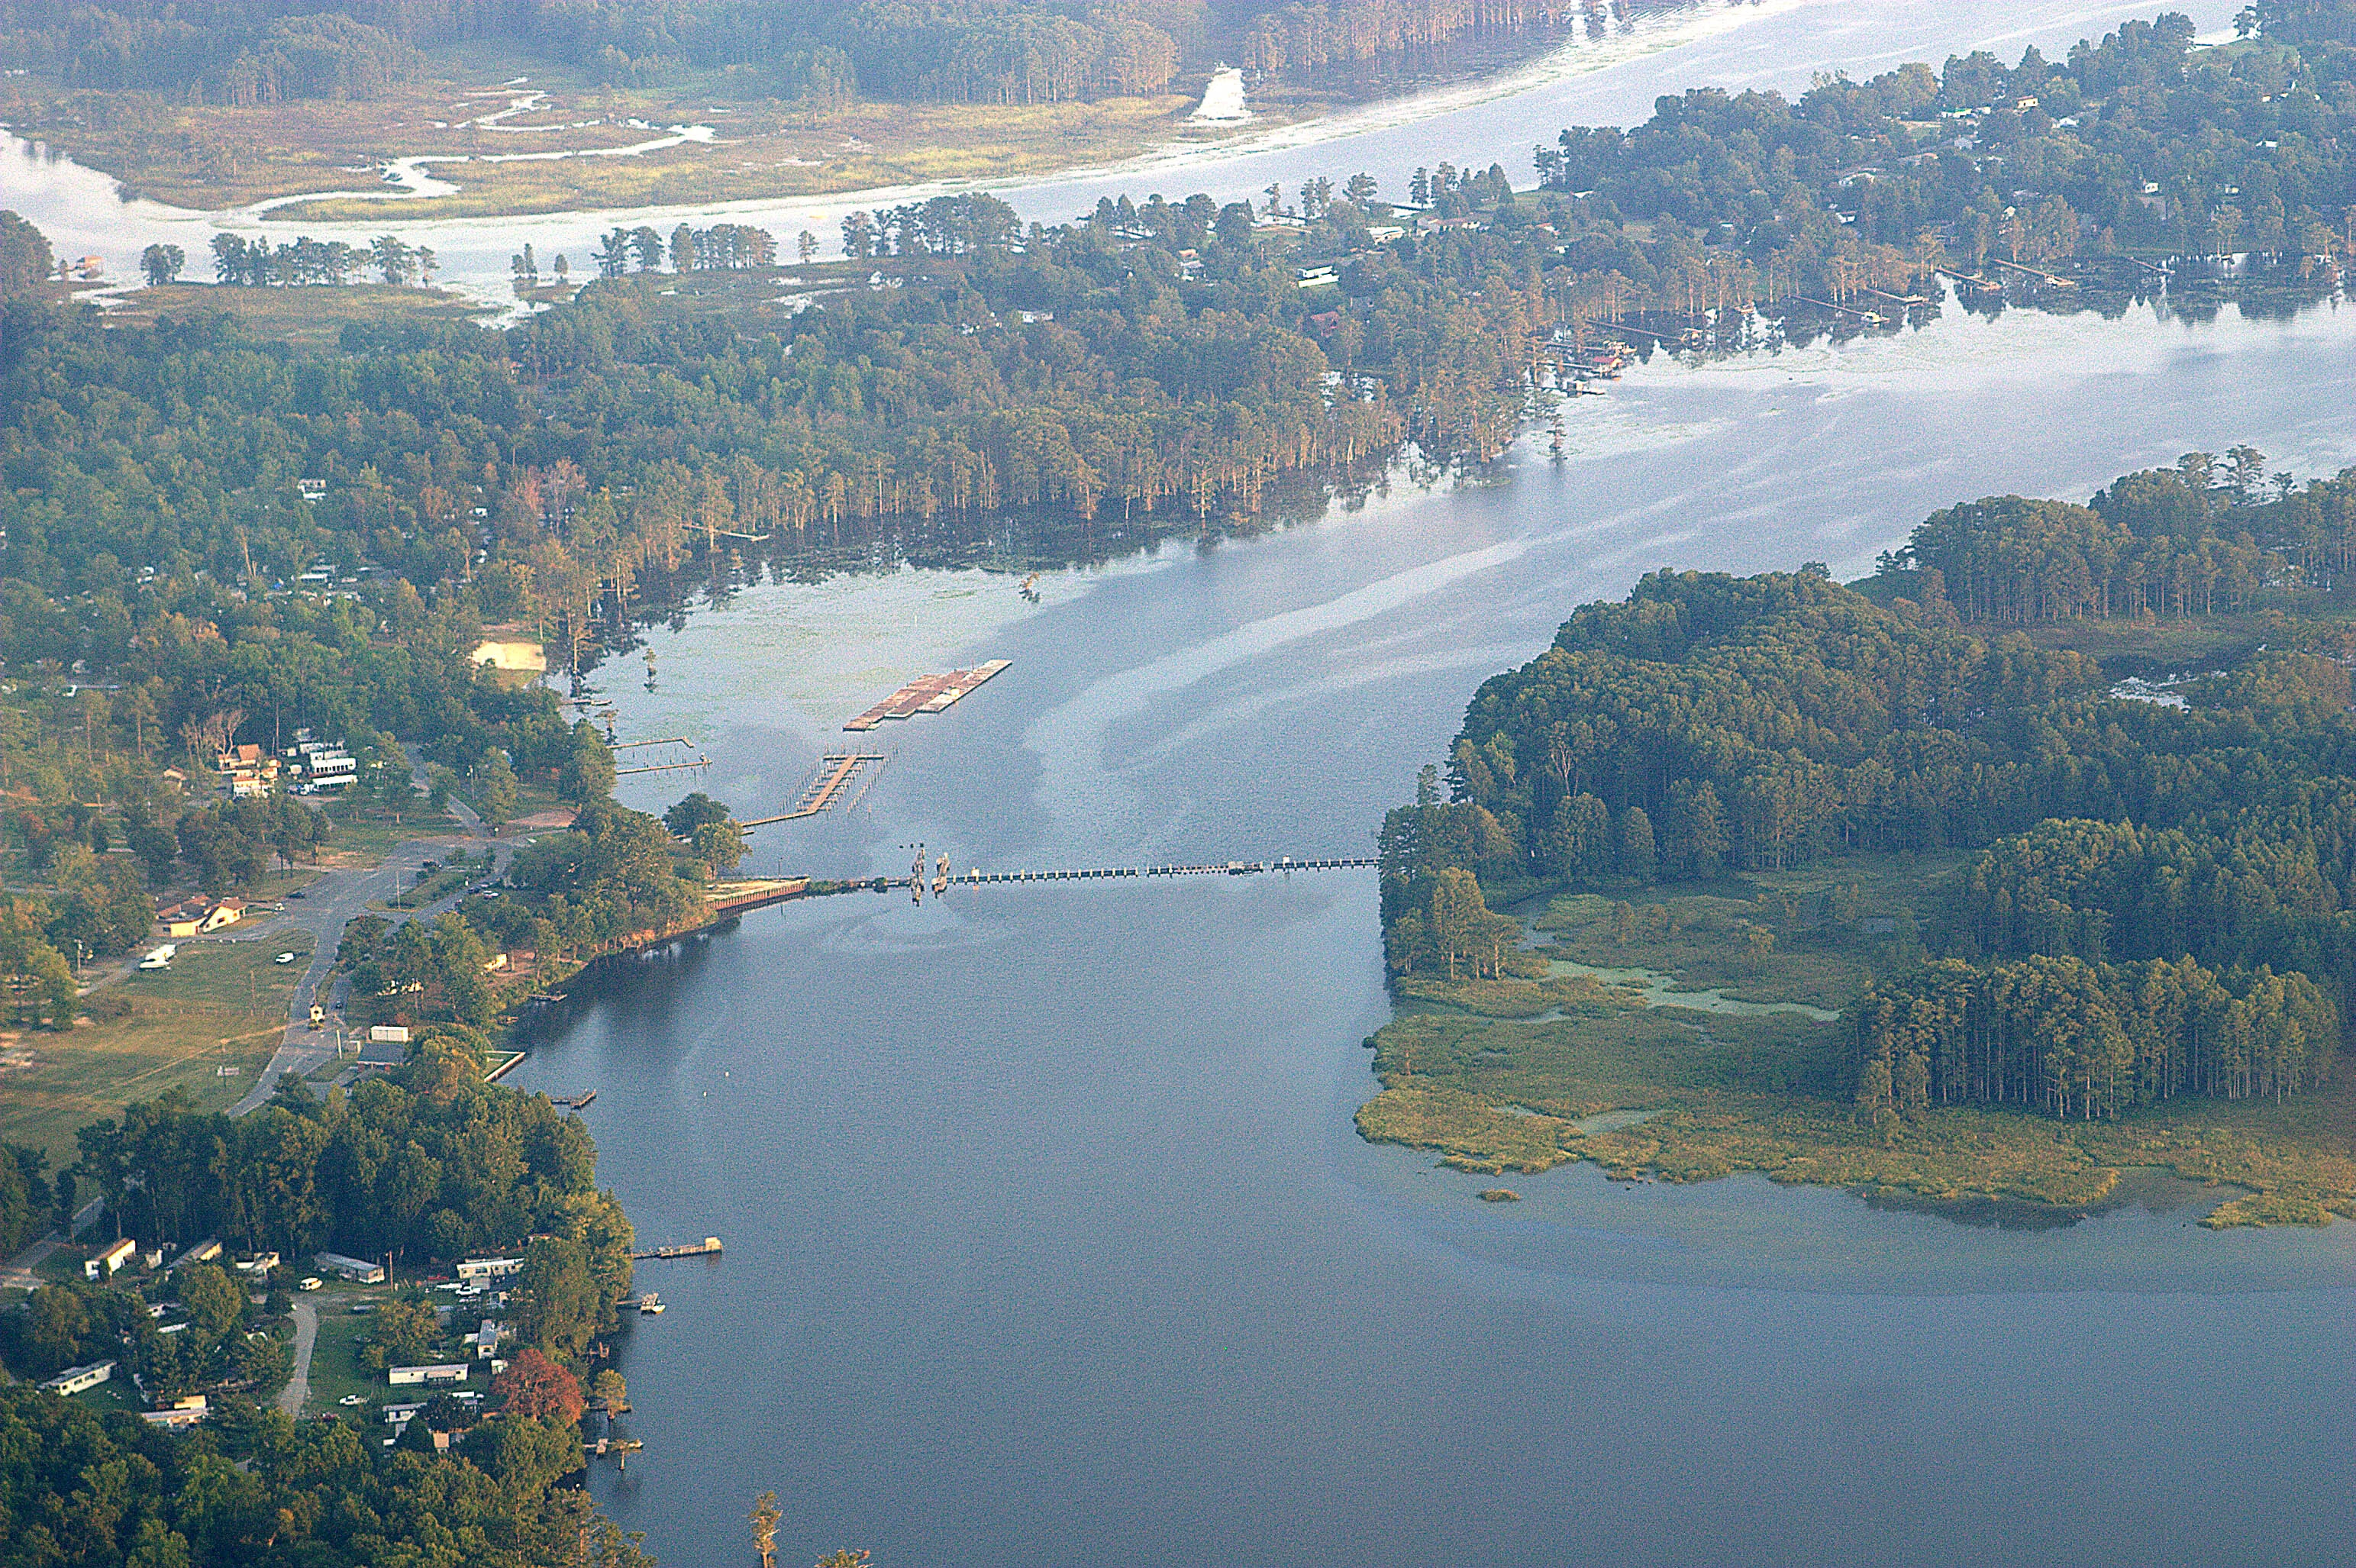 Aerial view of Rockahock on the Chickahominy River (John Bragg)